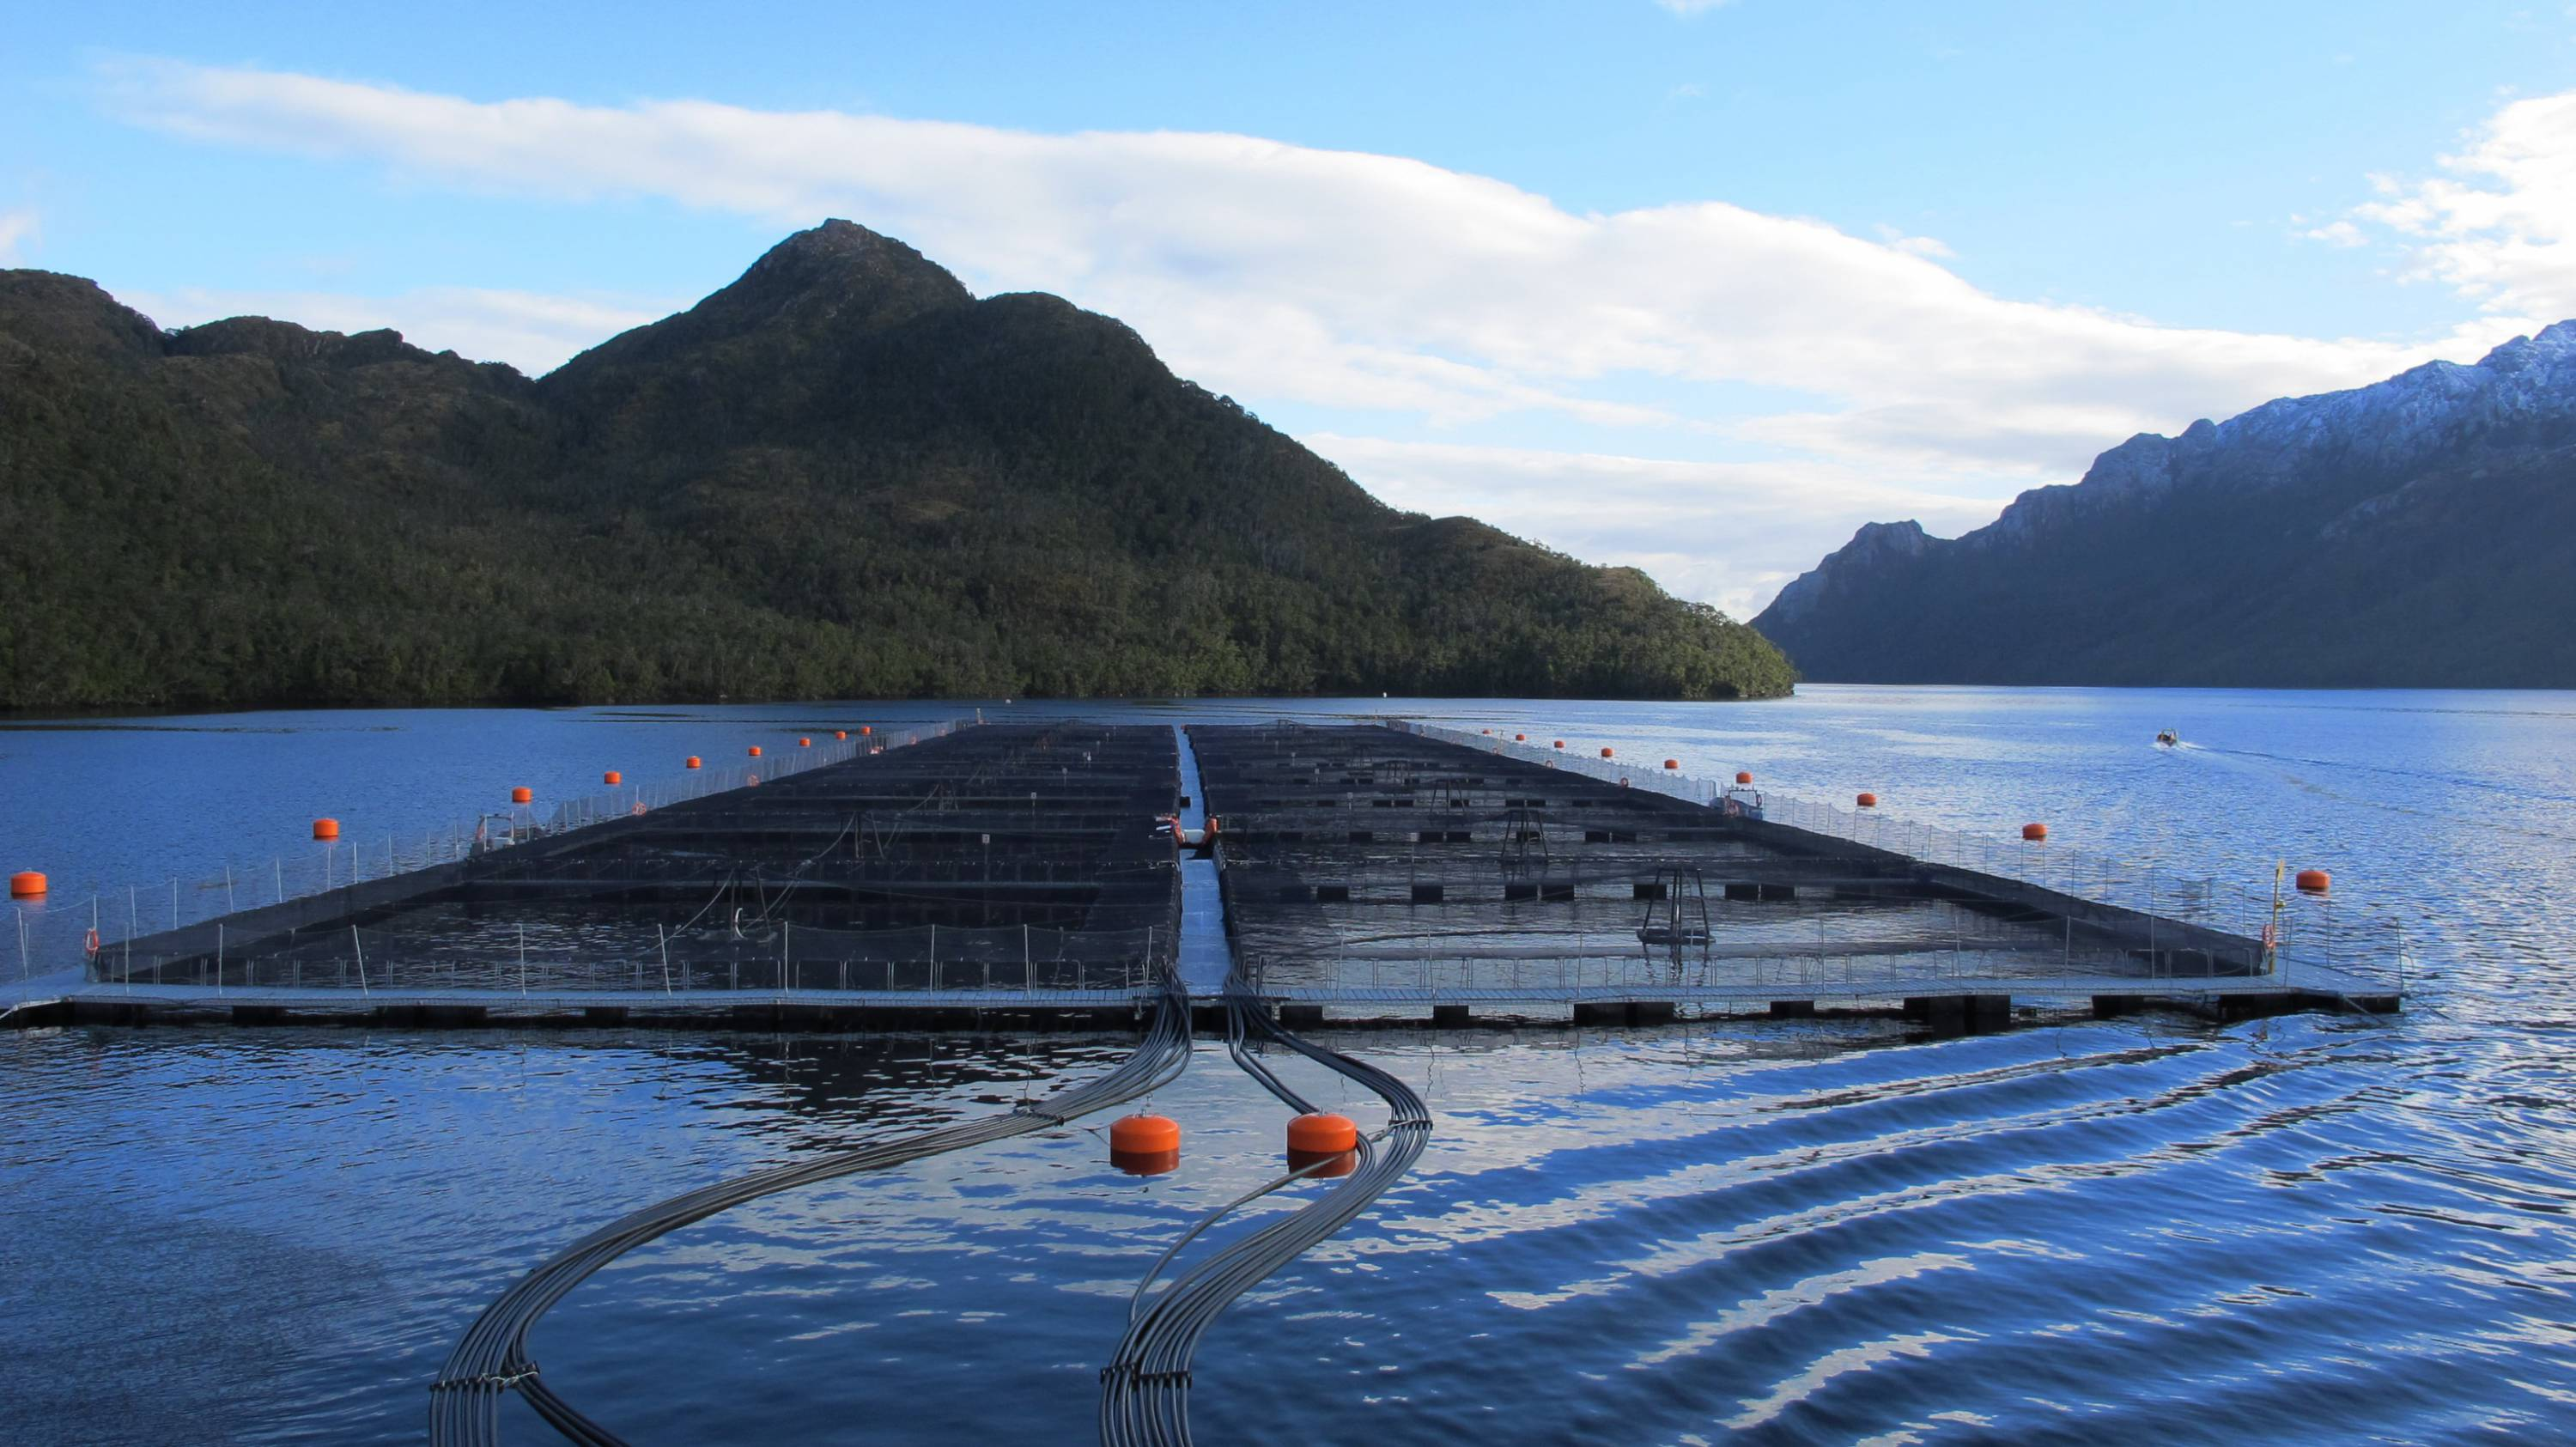 Salmon pens in the Antarctic ocean with mountains in the background